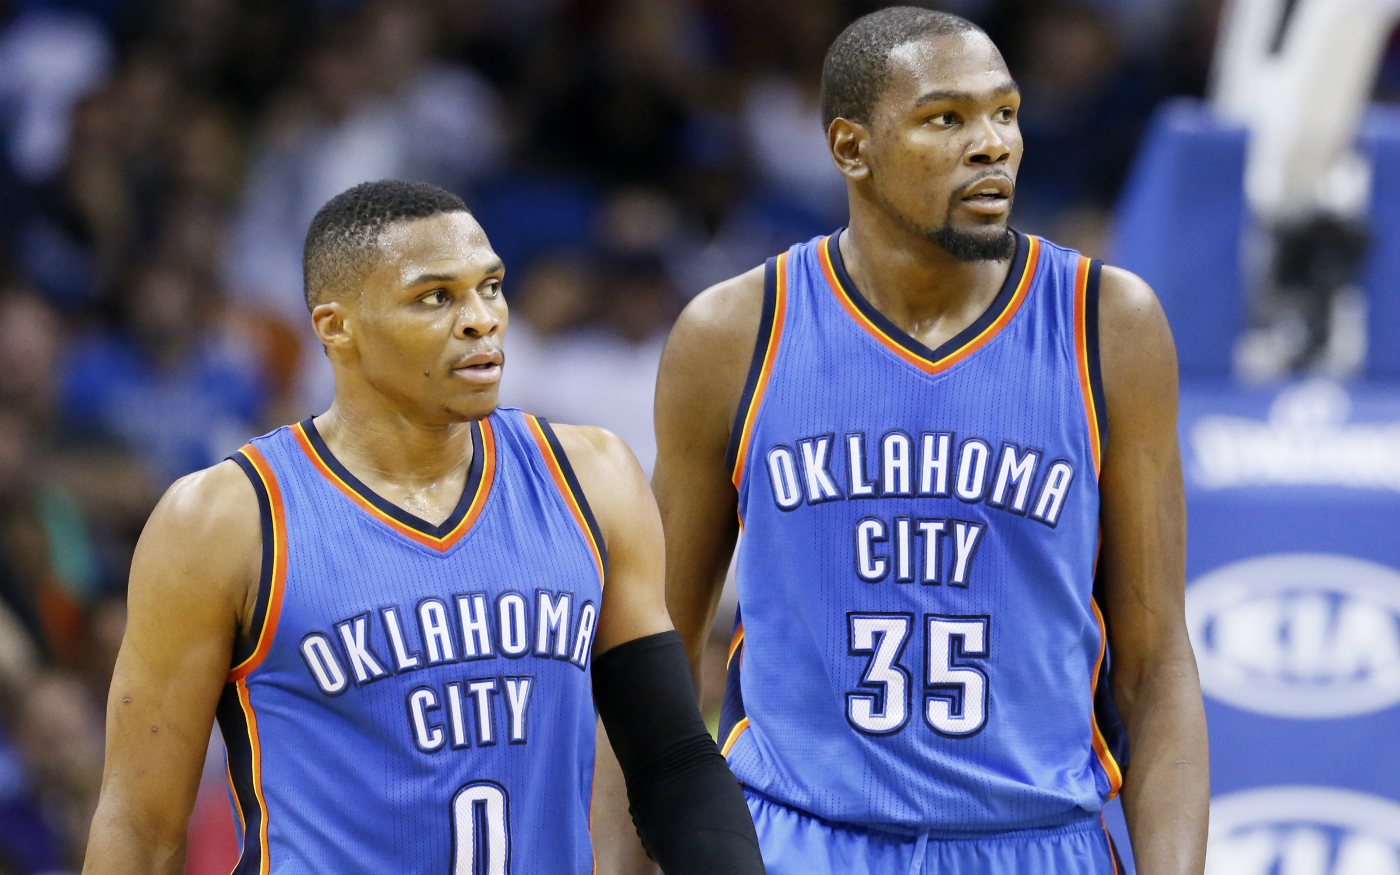 L'Oklahoma City Thunder retrouve officiellement les Playoffs